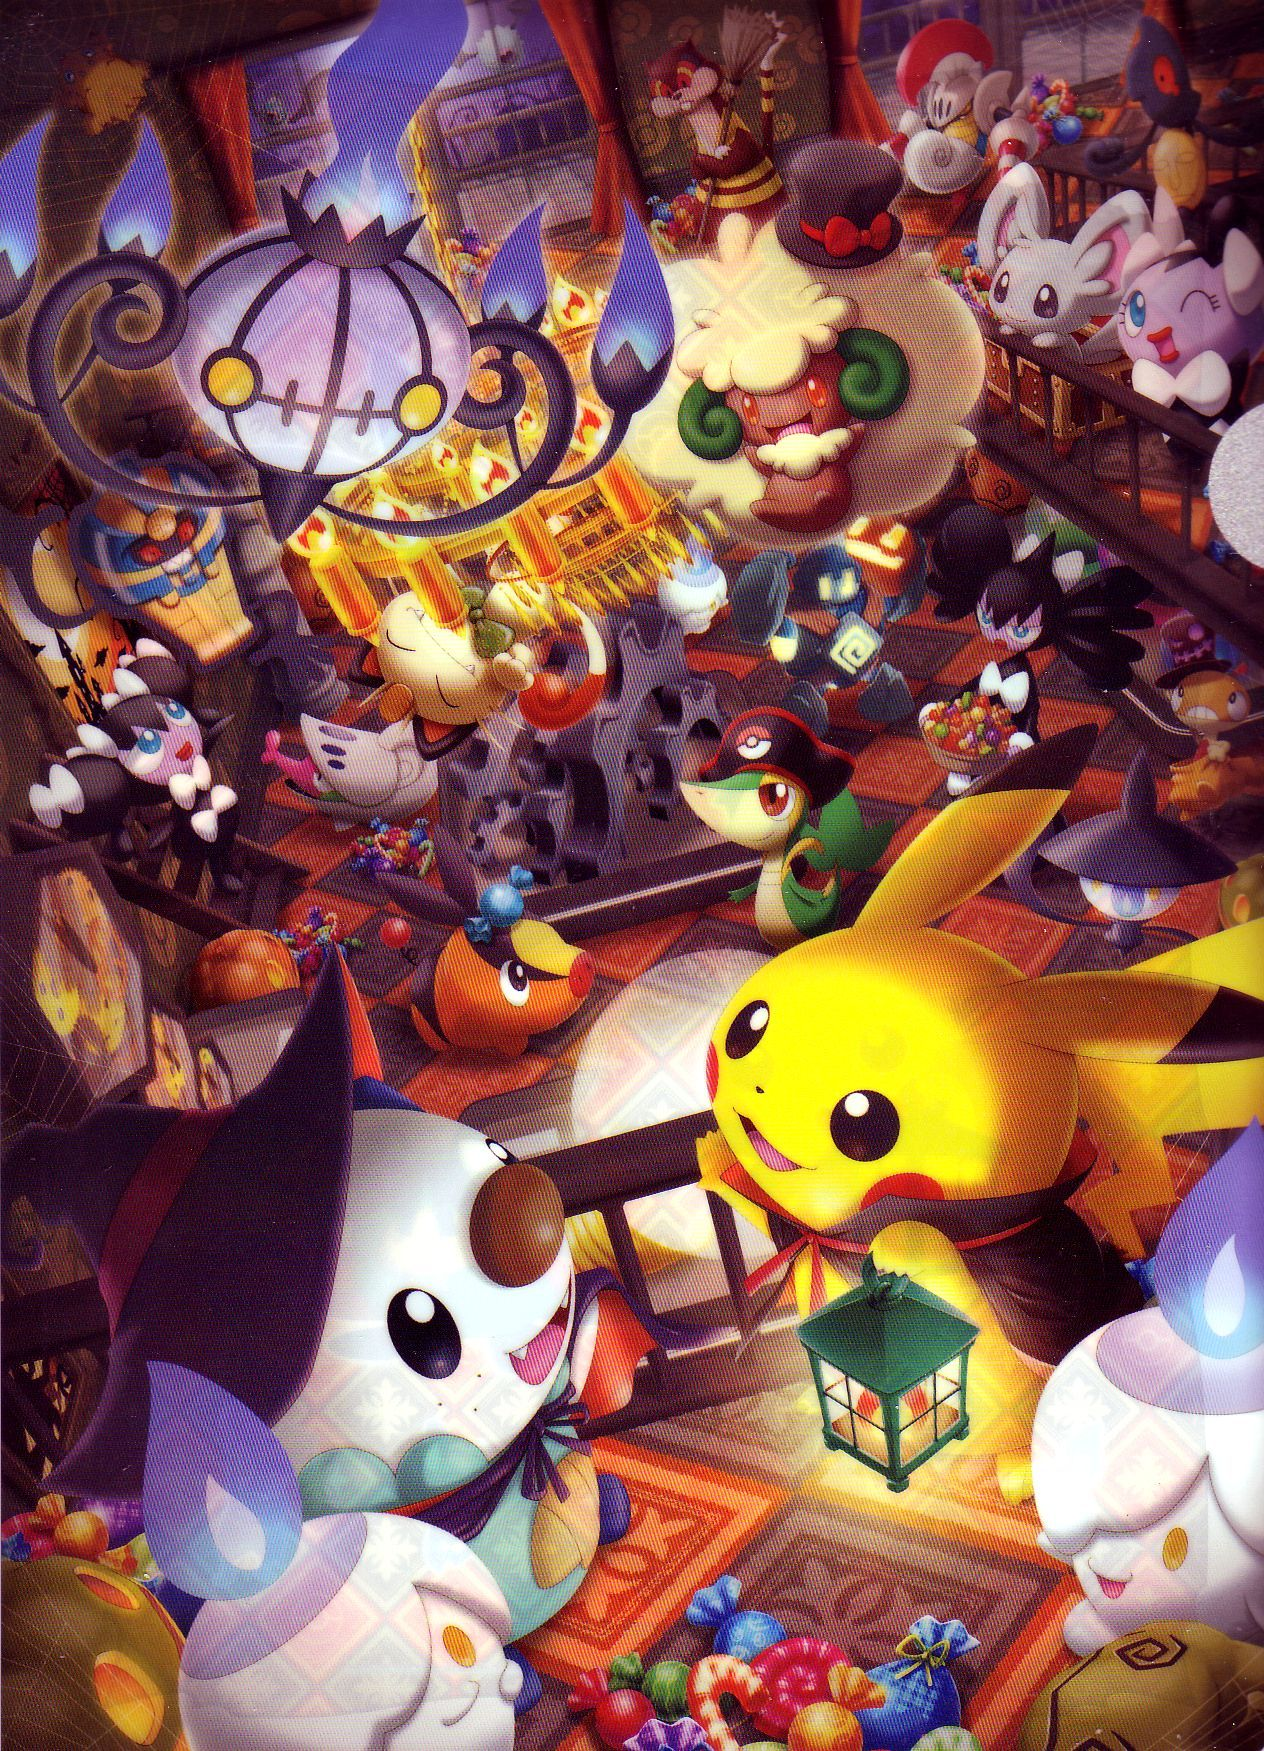 Great Wallpaper Halloween Pokemon - 1e9cd0f80b6f039352d8c01fca1df4d8  Best Photo Reference_457442.jpg